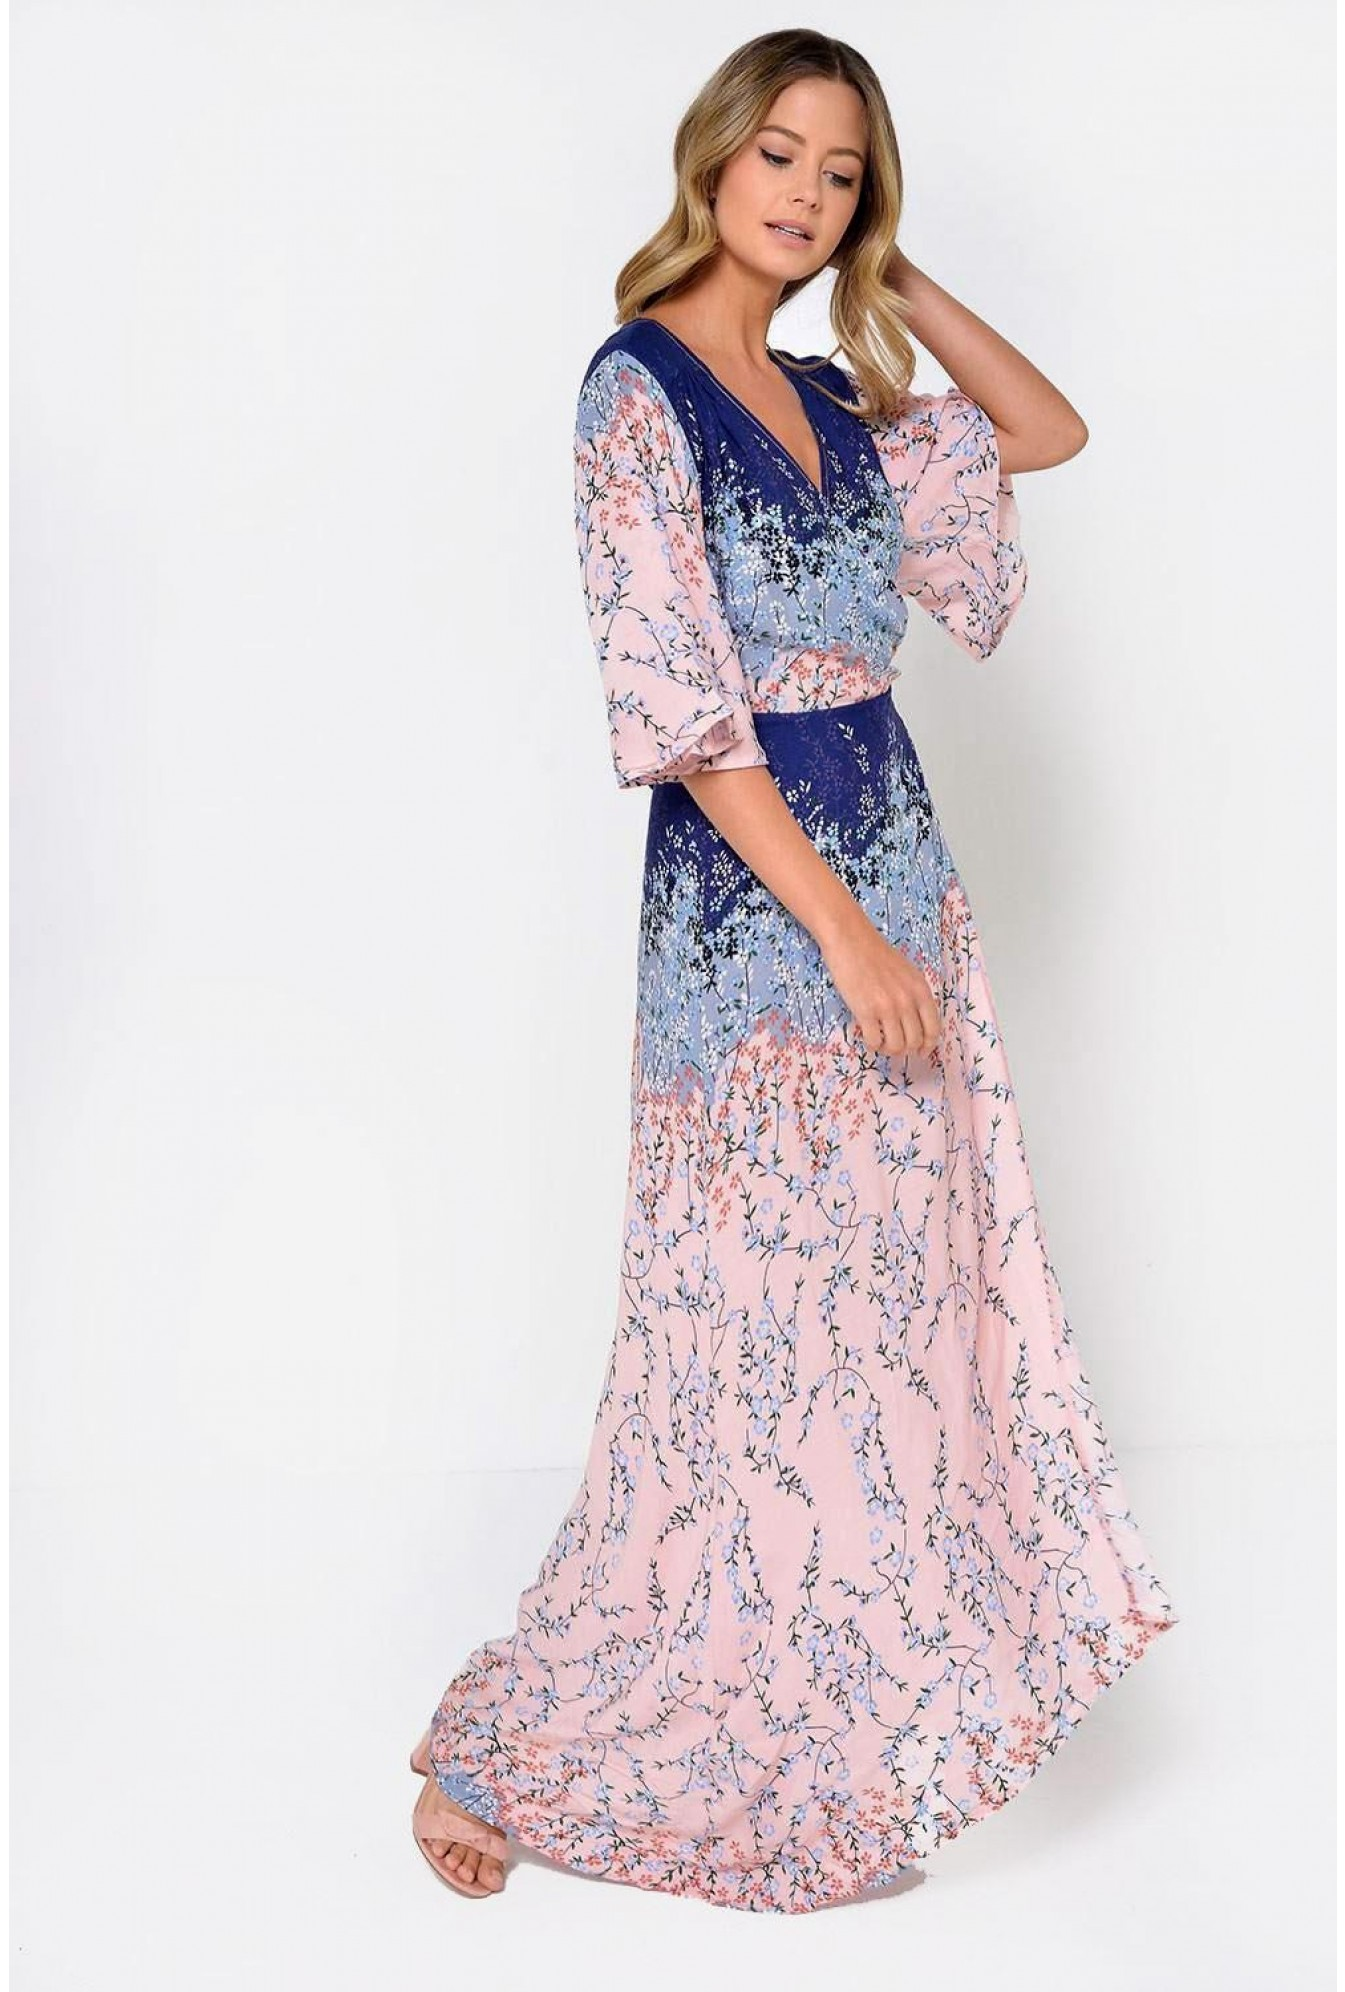 e9329ea807 Stella Anna Floral Wrap Maxi Dress in Pink   iCLOTHING